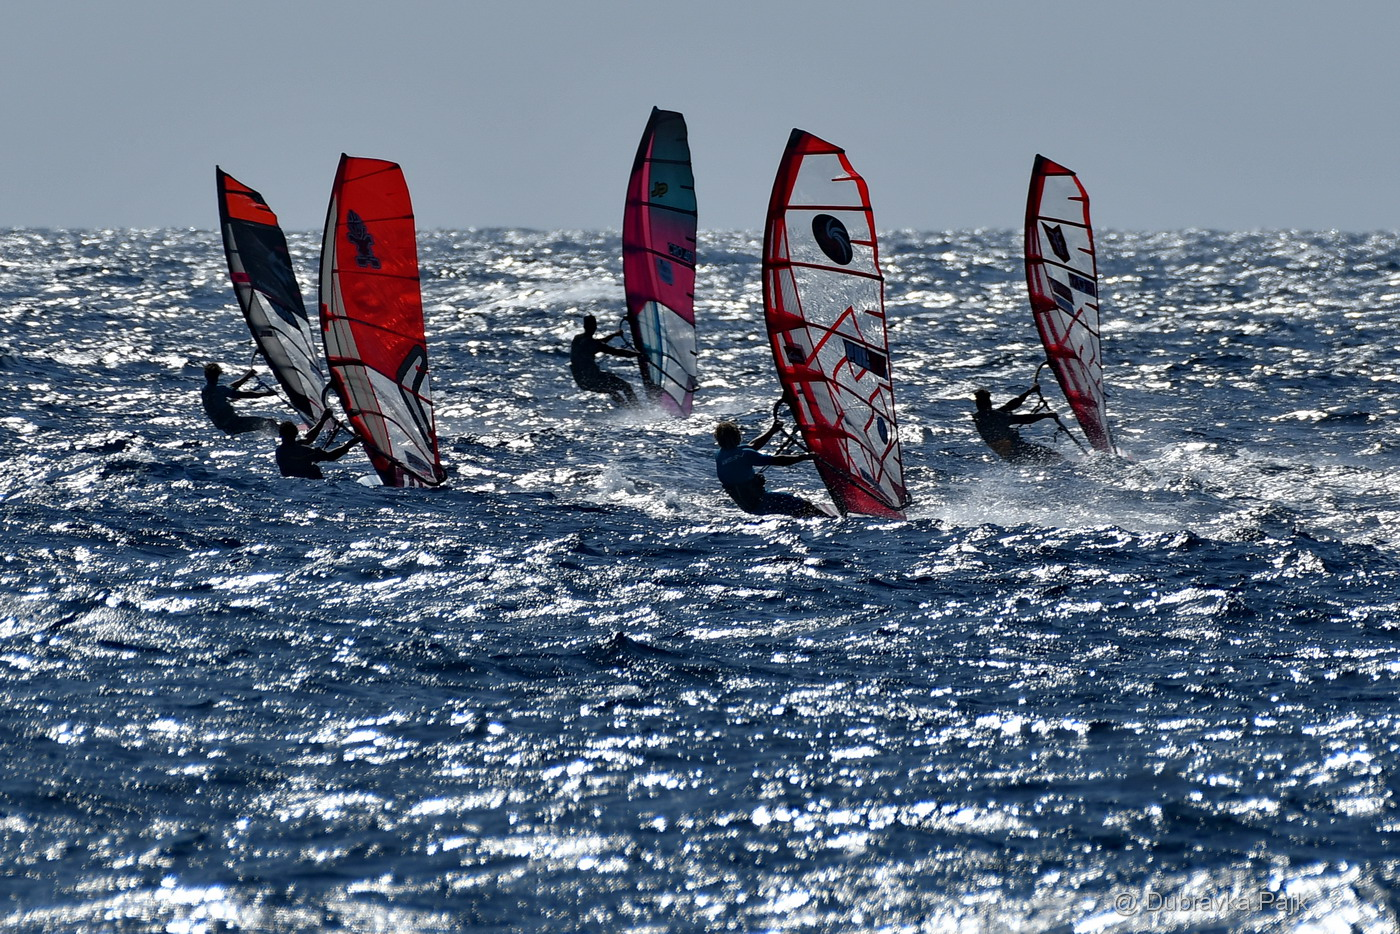 TWS Pro Slalom Training 2020 – El Medano, Tenerife, Canary Islands